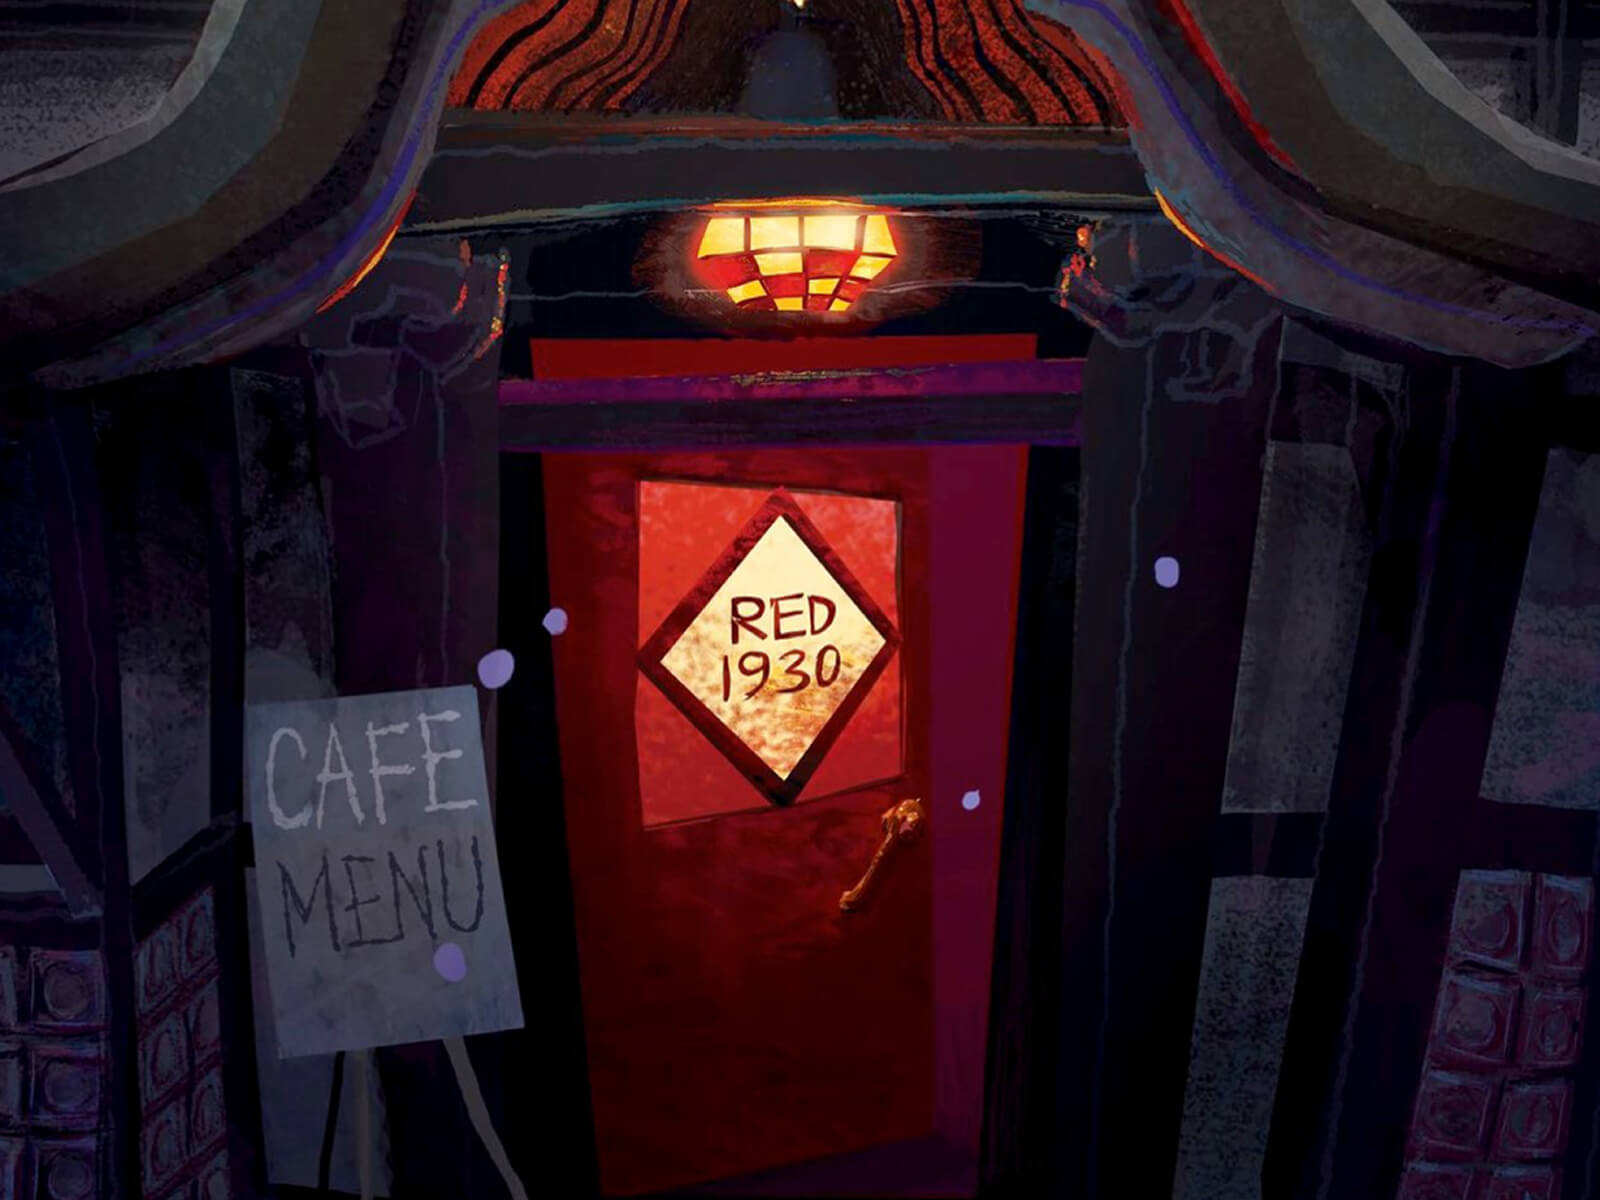 digital painting of the red 1930 cafe door and menu at night